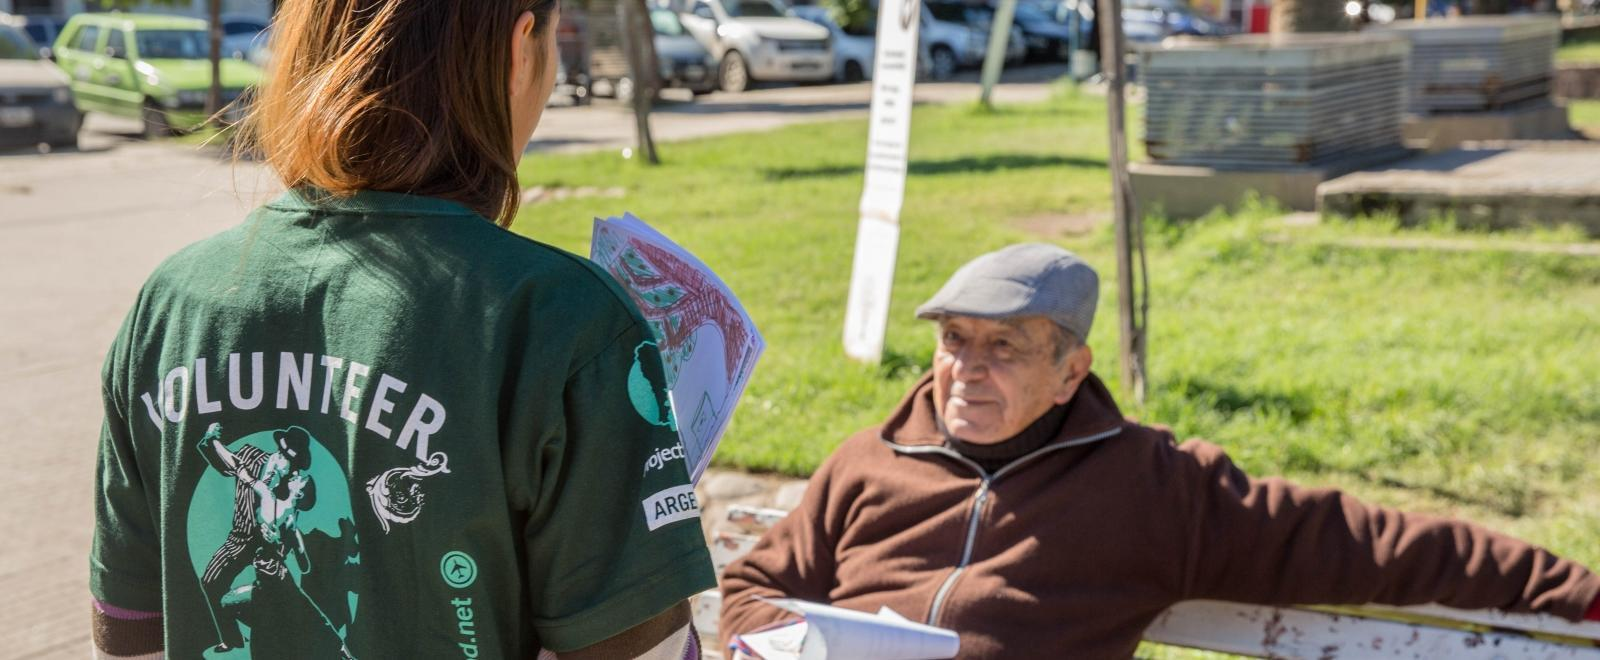 A student speaks to a local man during a campaign on her Human Rights internship in Argentina.